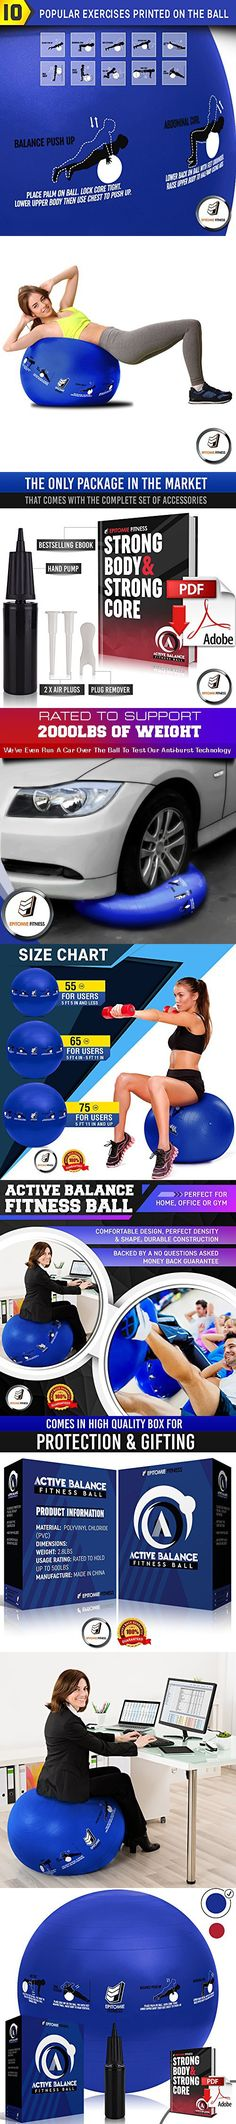 Active Balance 55cm Fitness Ball - Exercise & Stability Balls With Imprinted Exercises & Training eBook - Best Core Trainer For Pilates, Exercising & To Tone Abs (Navy Blue)